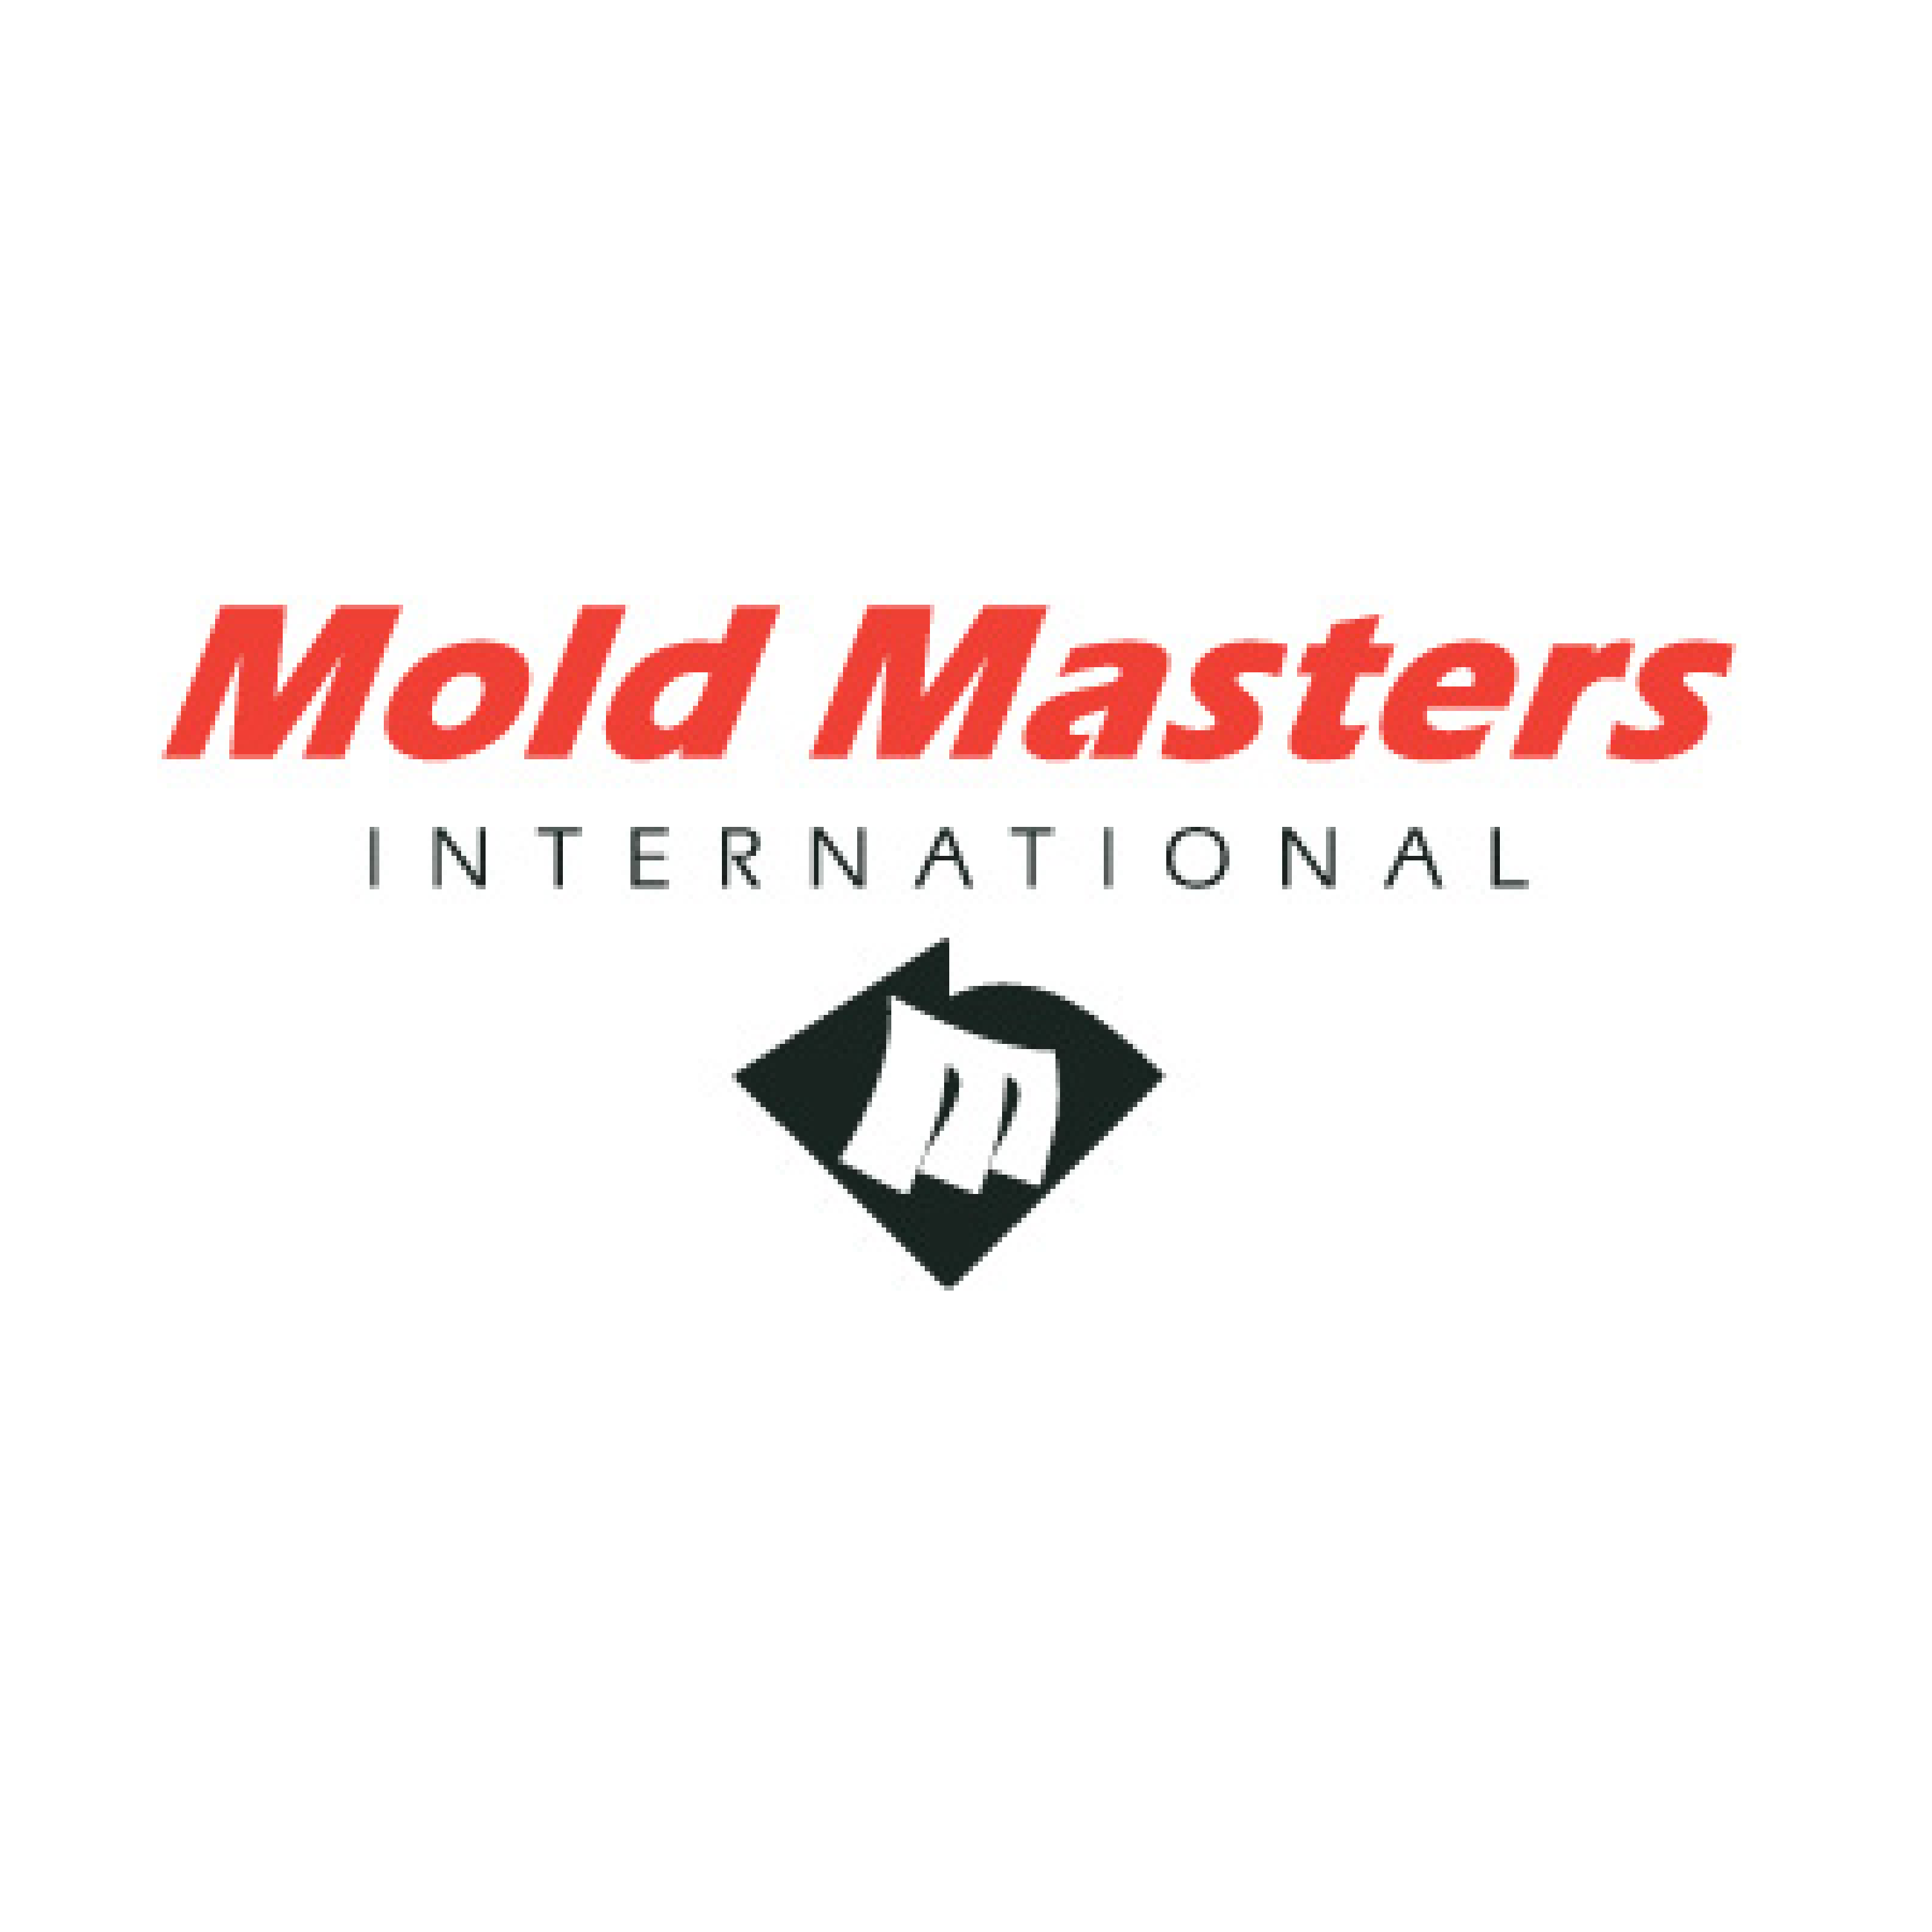 Mold Masters International